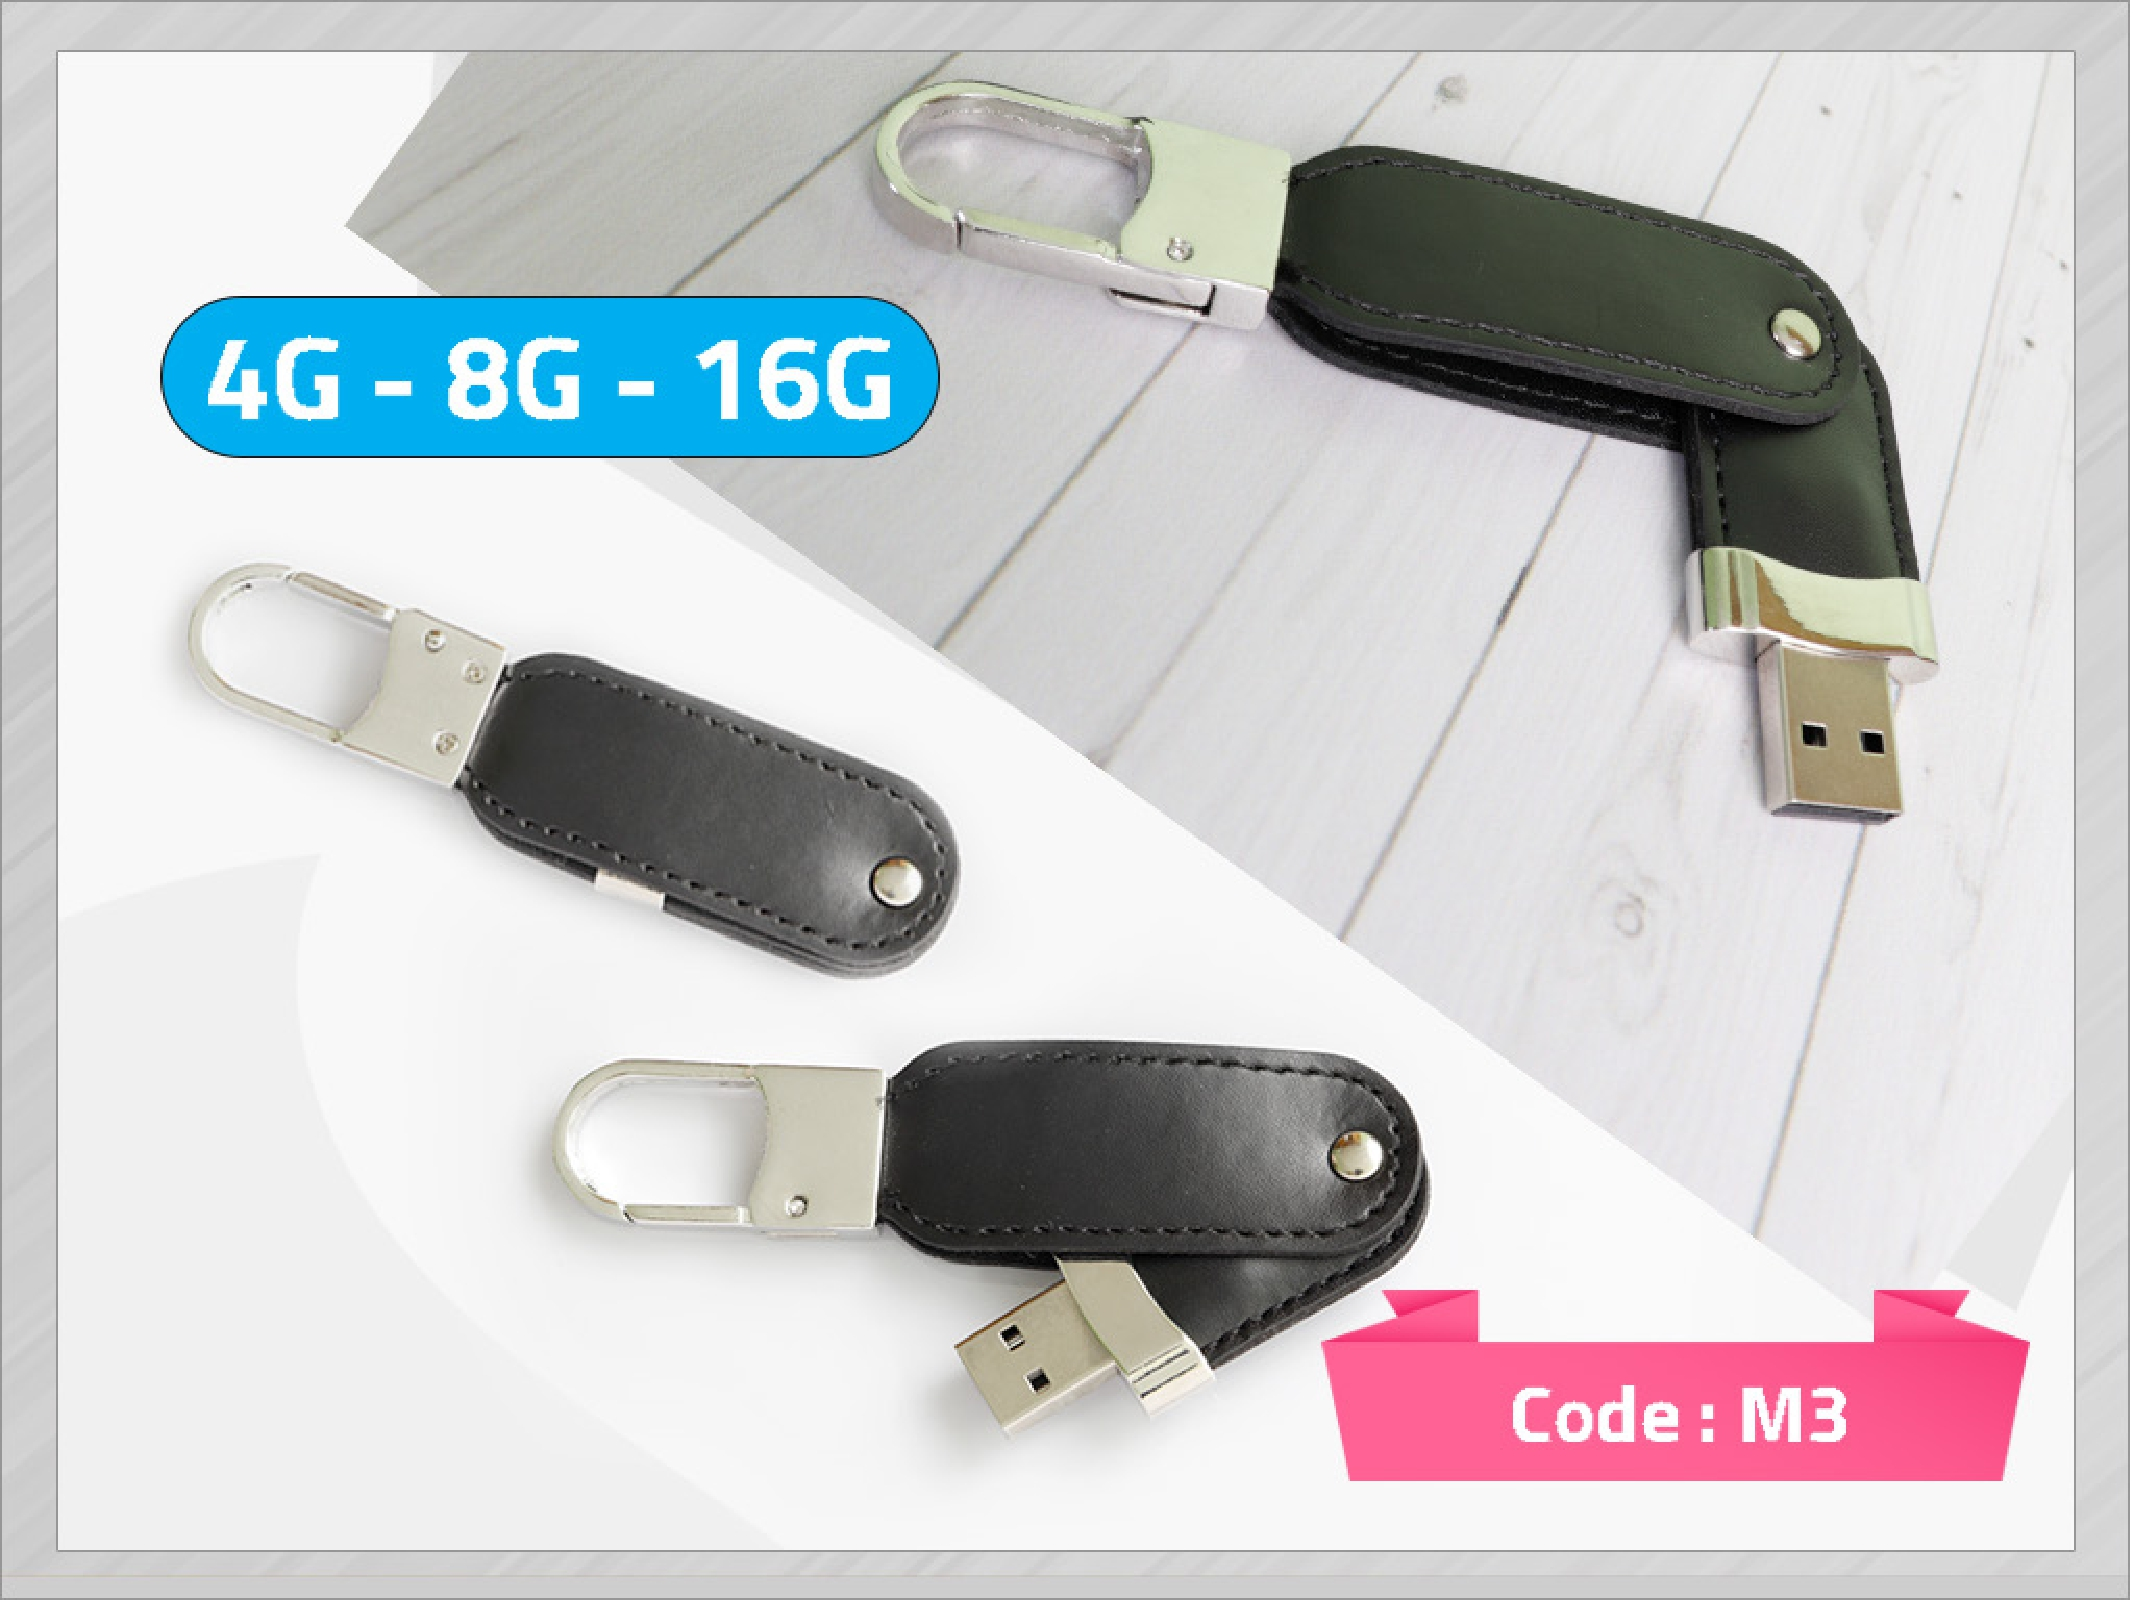 3-usb-flash-34-new_page-0034